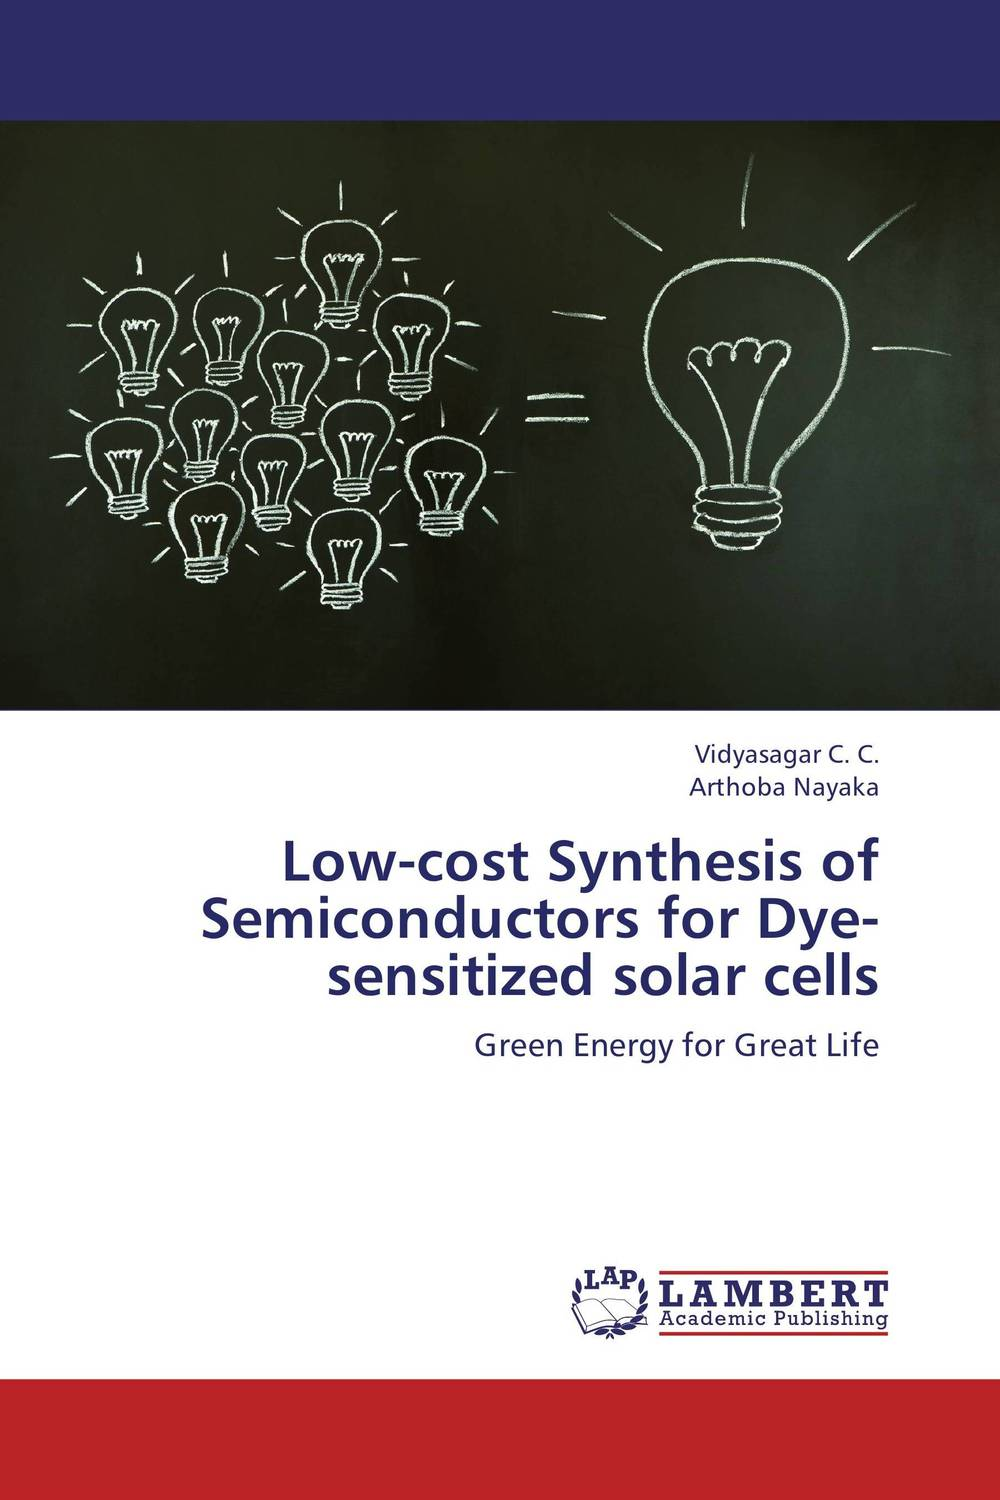 Low-cost Synthesis of Semiconductors for Dye-sensitized solar cells extra fee cost just for the balance of your order shipping cost